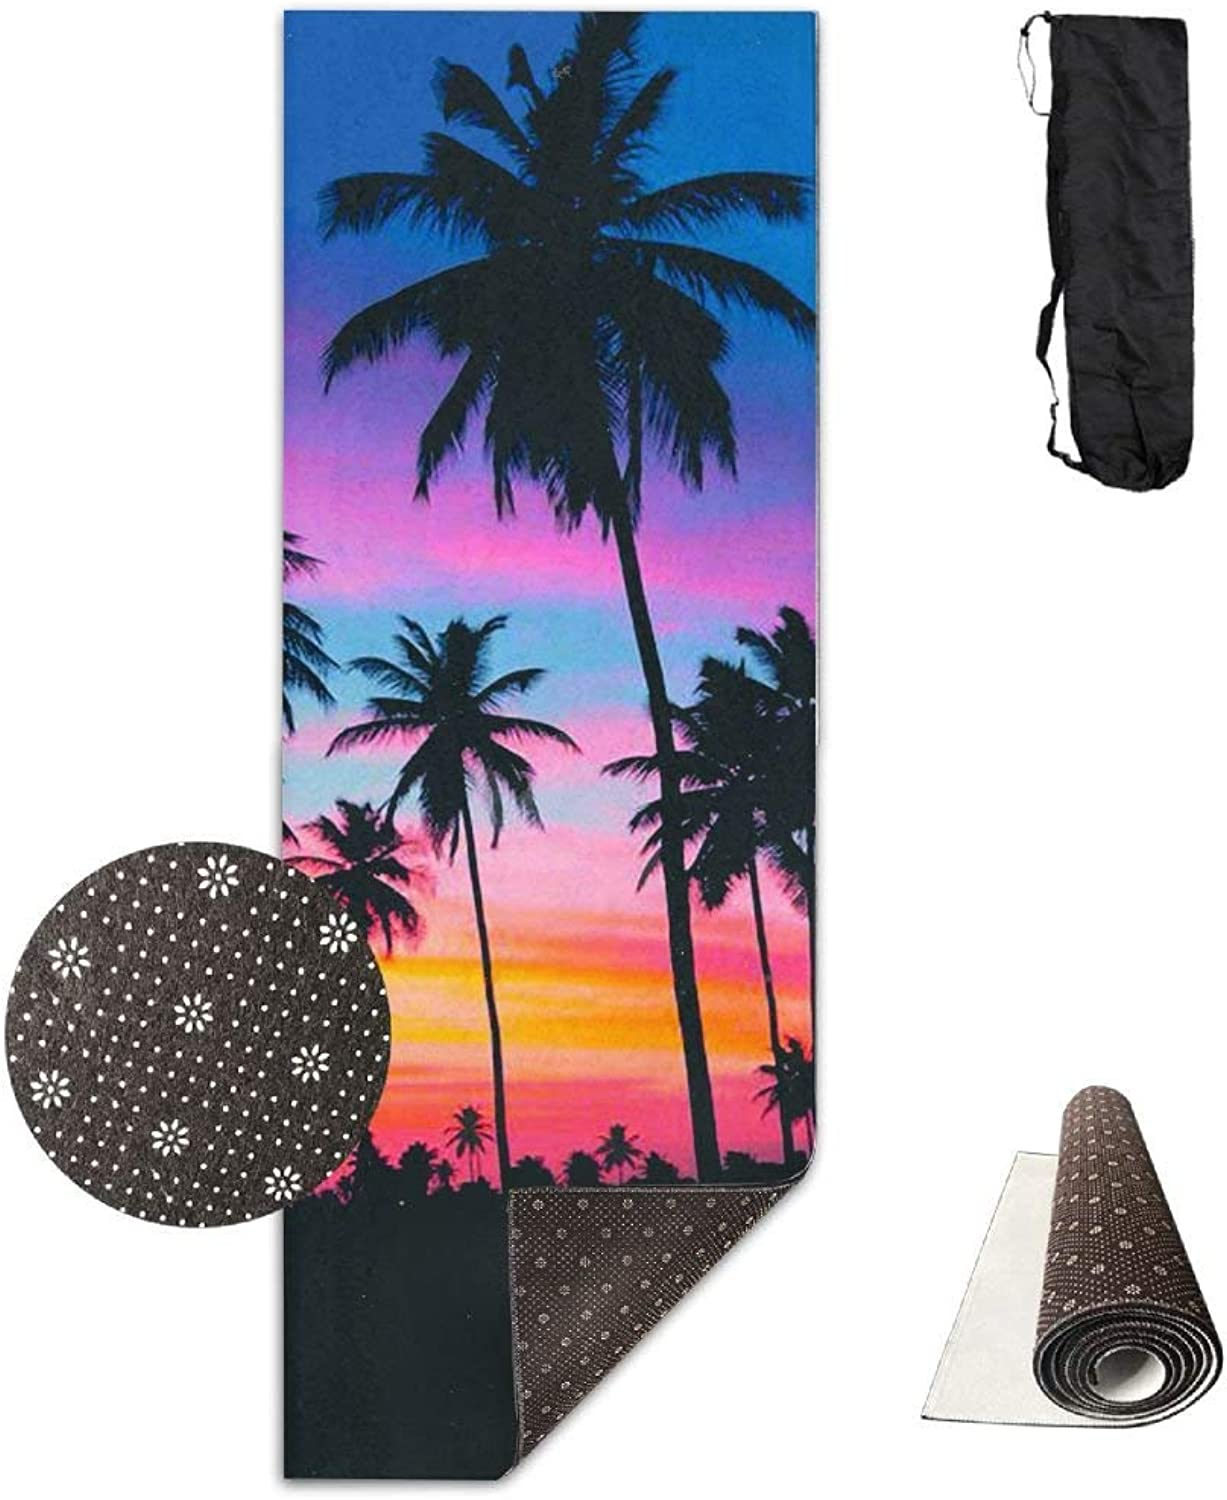 Purple Beach Palm Trees Yoga Mat 72X24 Inch Premium Print NonSlip EcoFriendly AntiTear Floor Pilates Exercise Mat for Yoga, Workout, Fitness with Carrying Strap